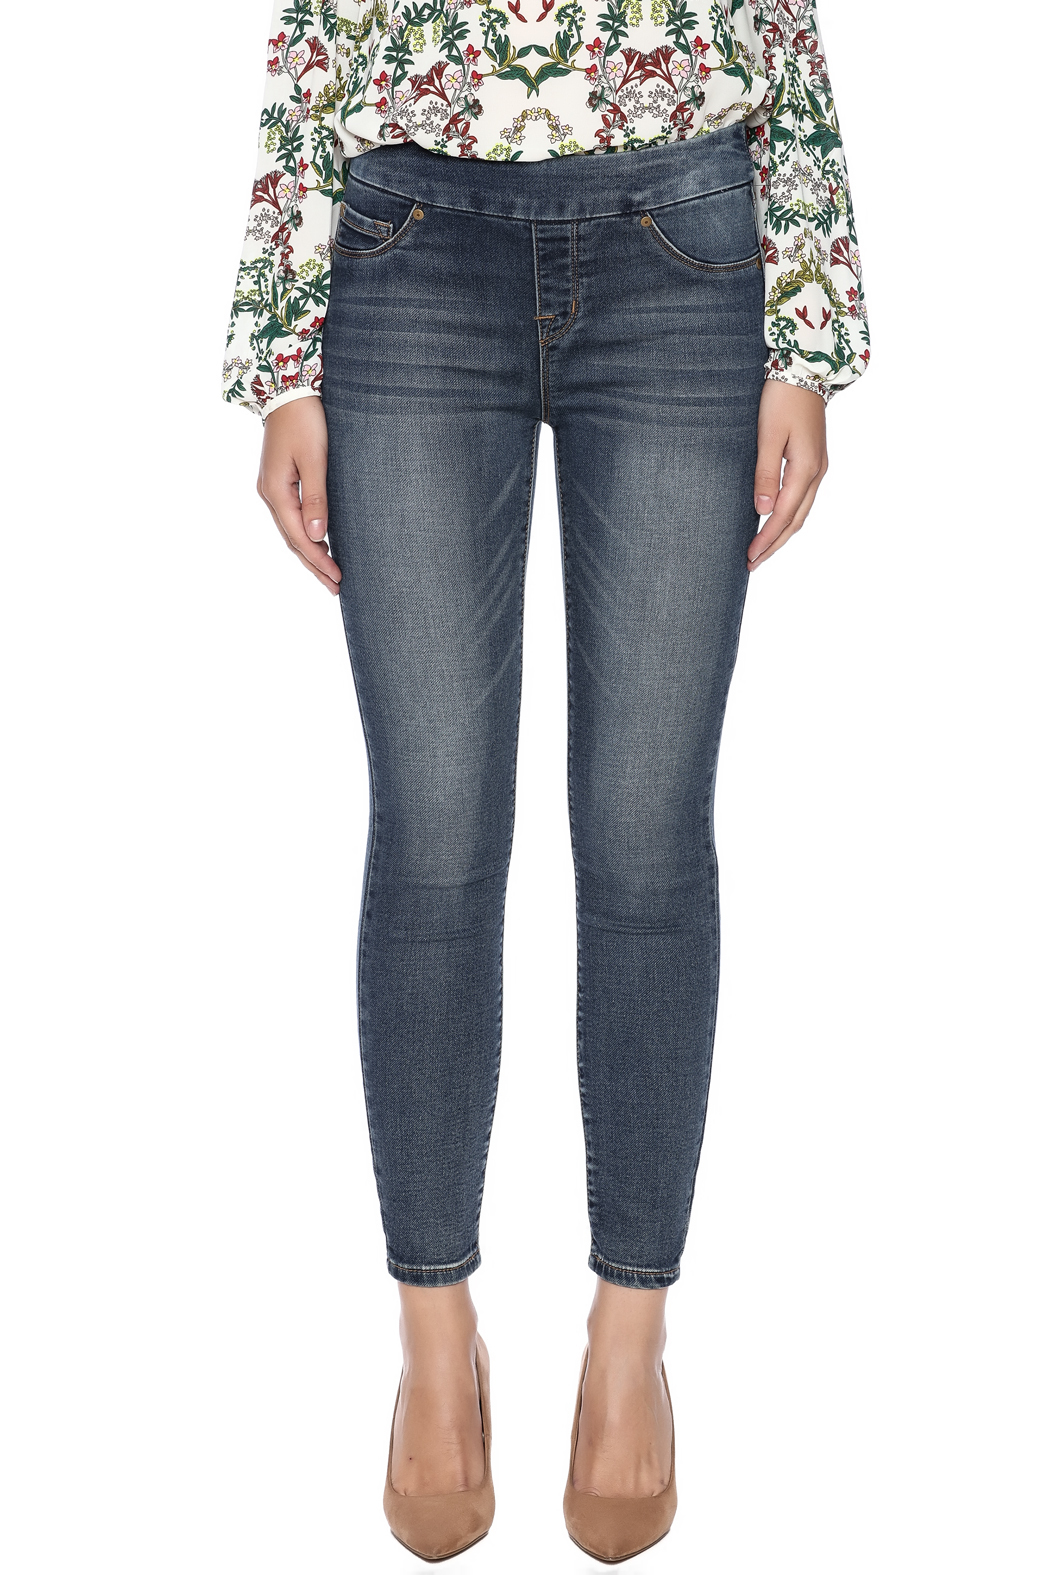 Tribal Jeans Distressed Jean - Side Cropped Image